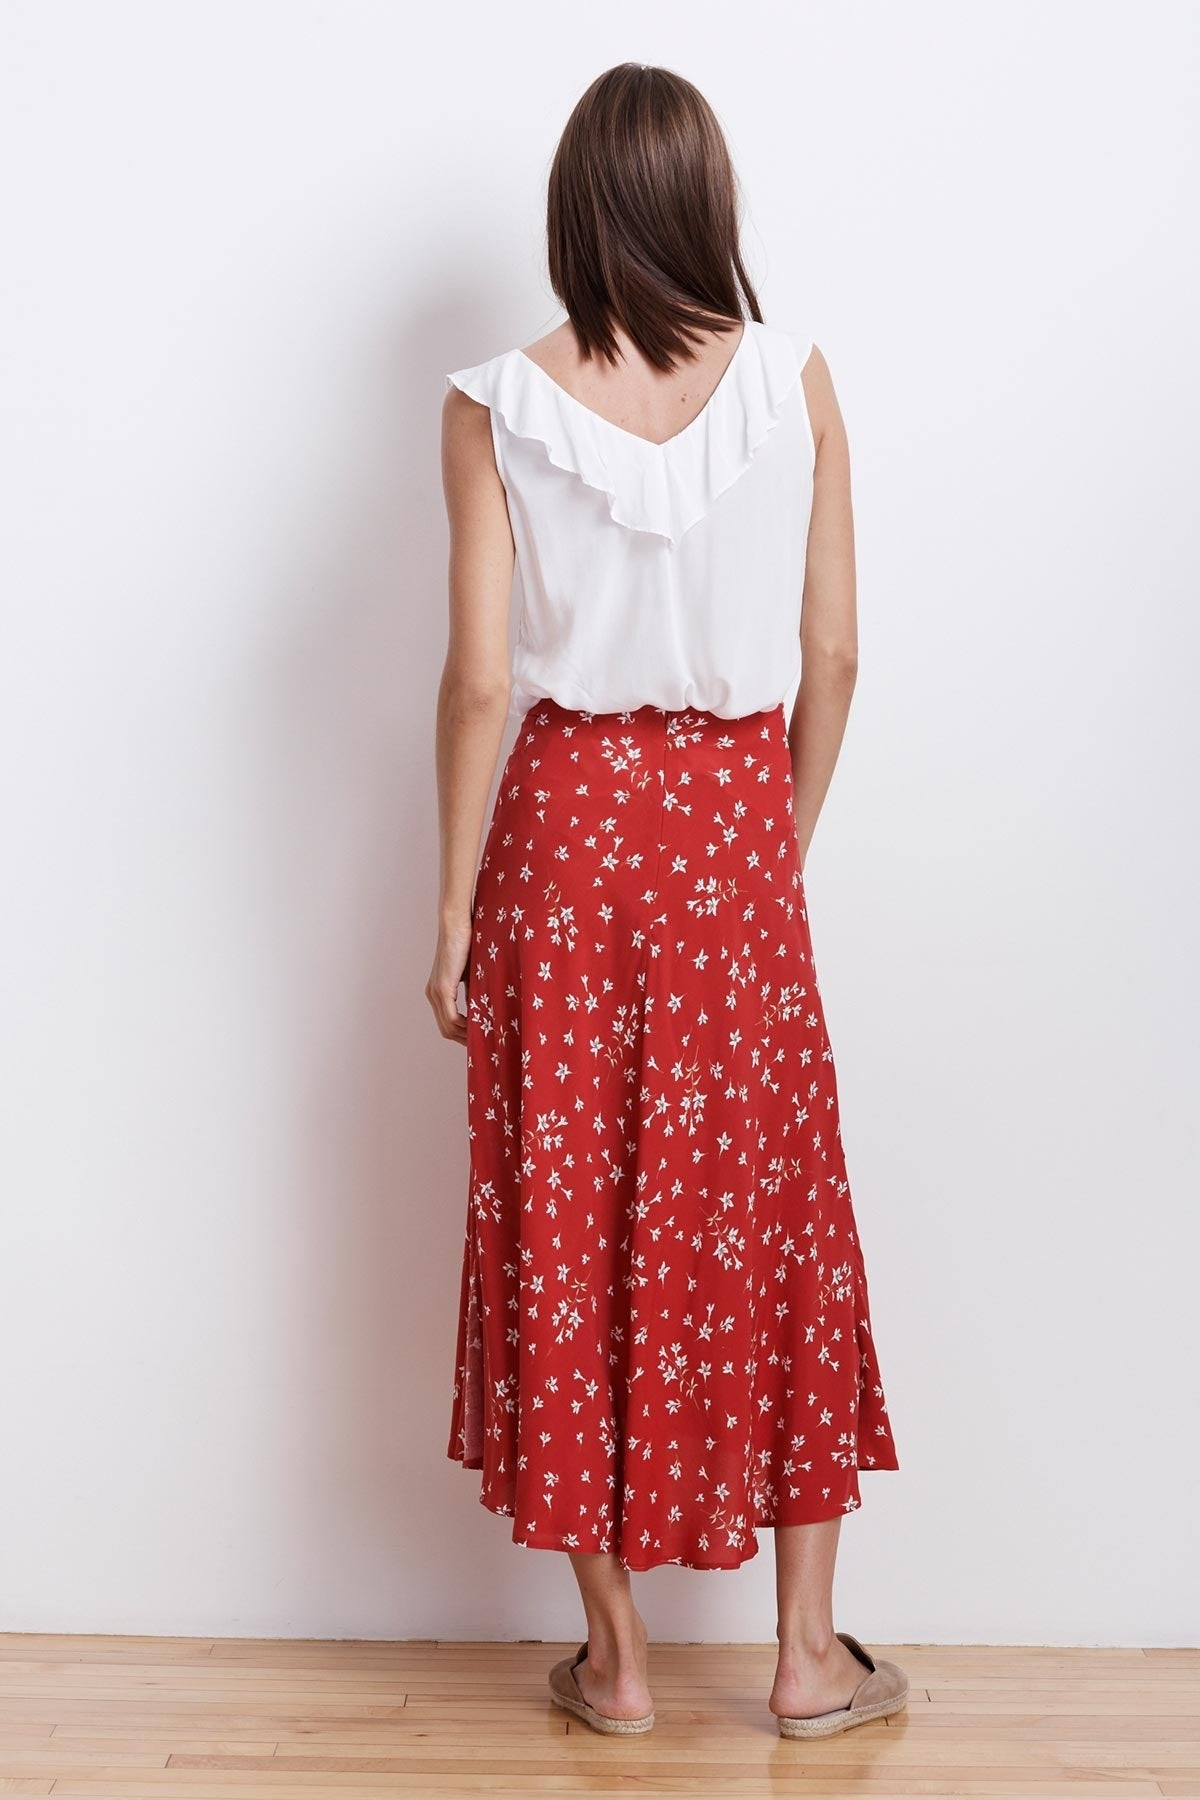 SWAN SPRING FLORAL HGH LOW SKIRT